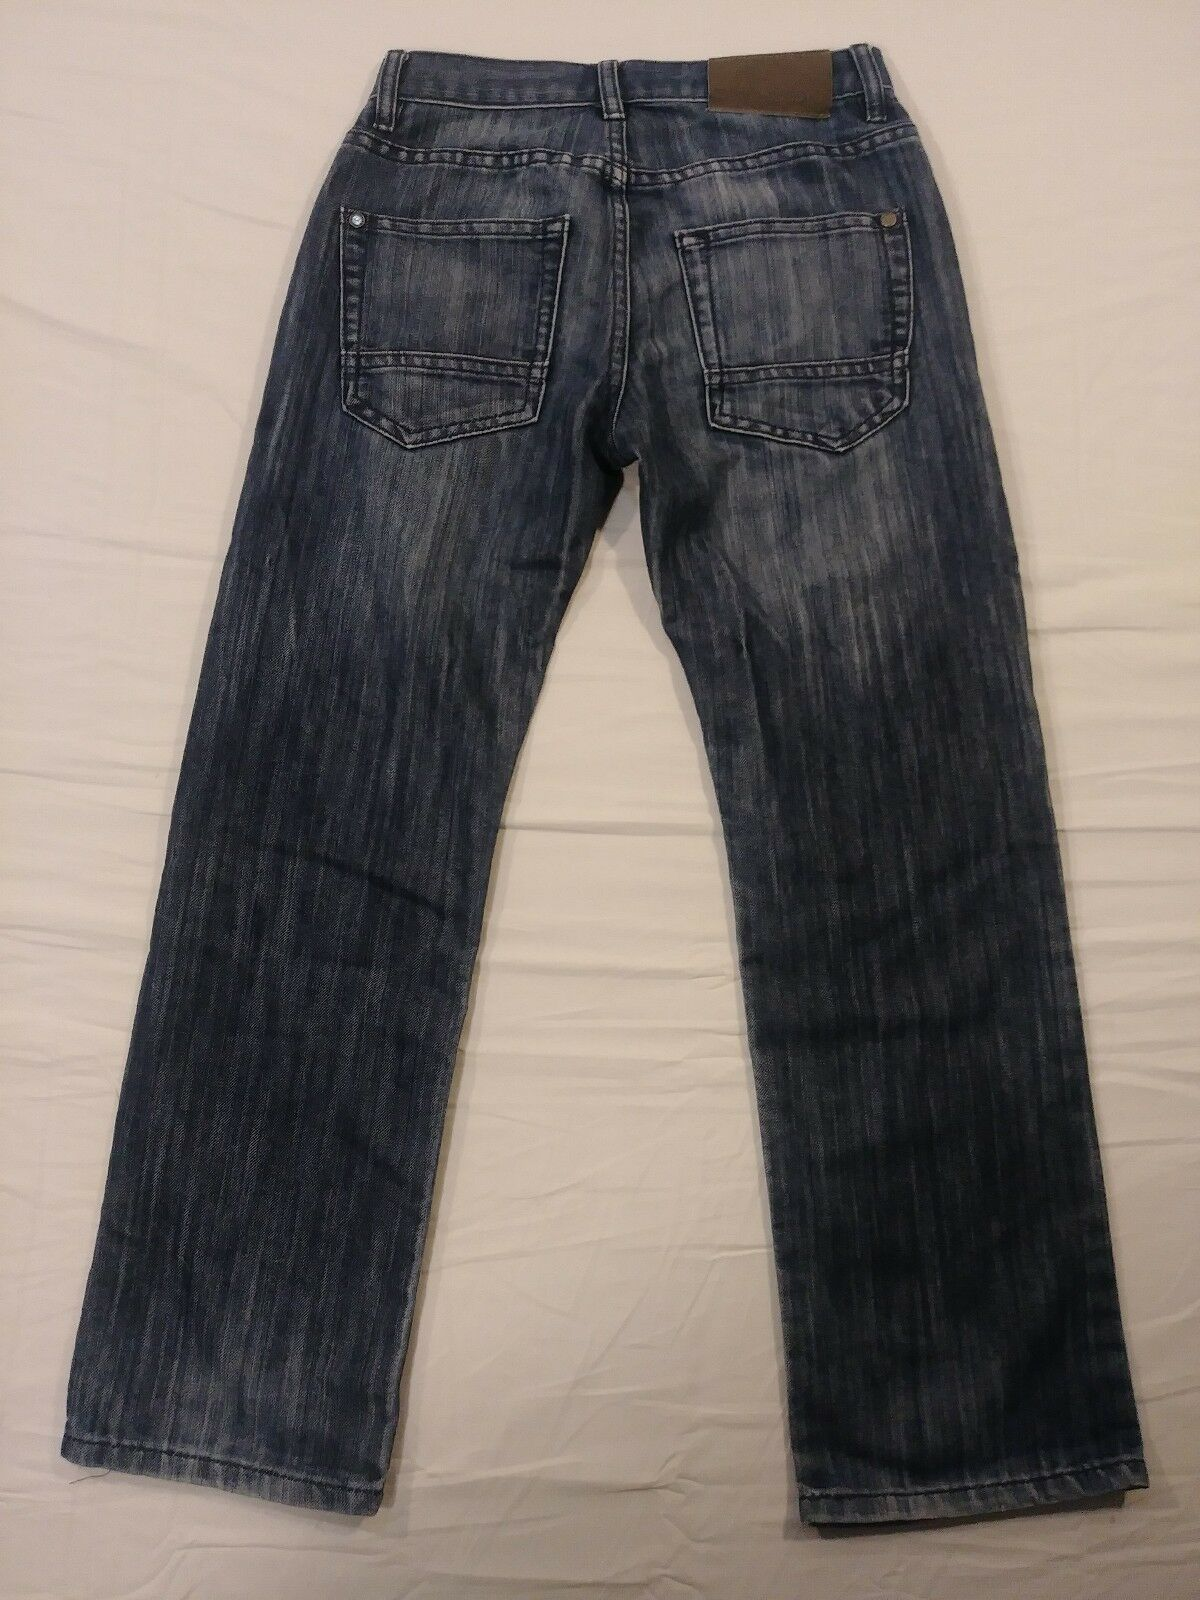 Nautica Boys Size 12 Mid Wash Blue Denim 5 Pocket Straight Leg Slim Jeans (#8) image 5